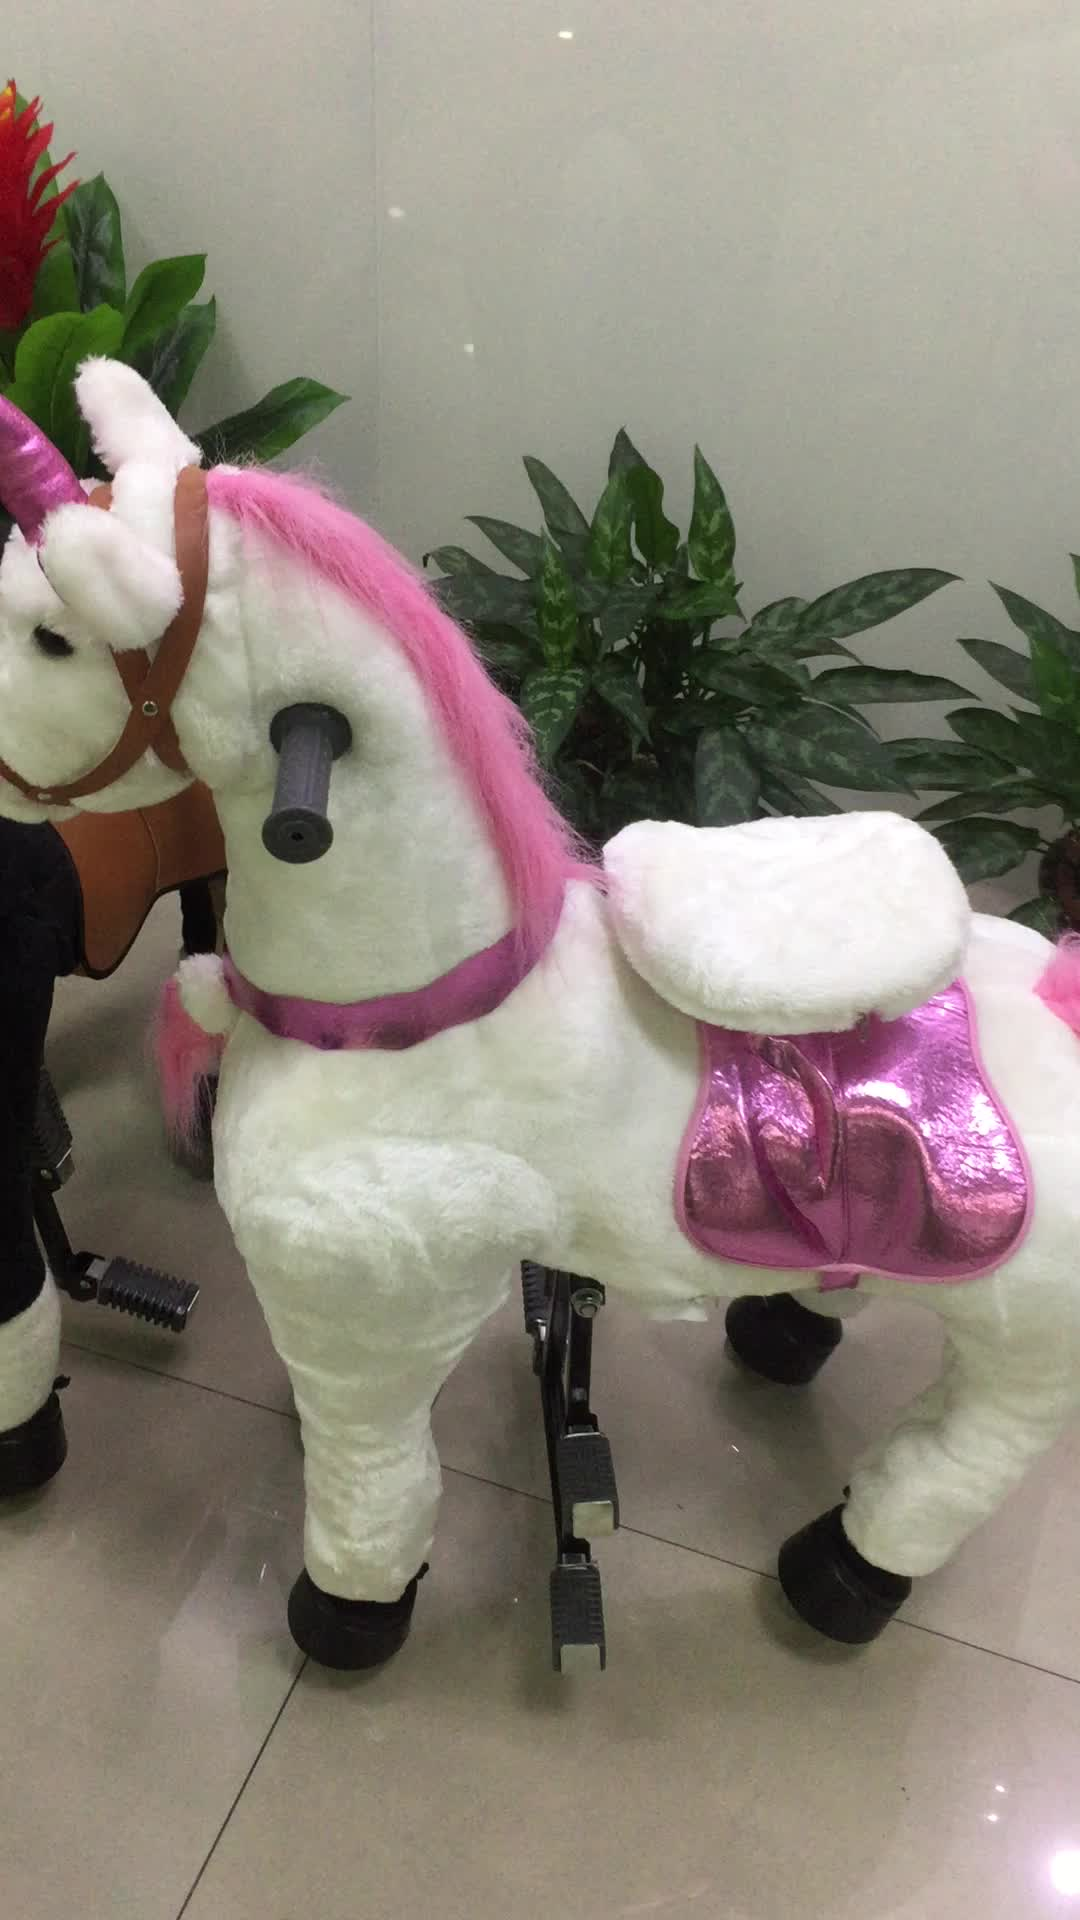 Unicorn Toys For Girls : Hi wholesale mechanical kid unicorn riding horse toy for